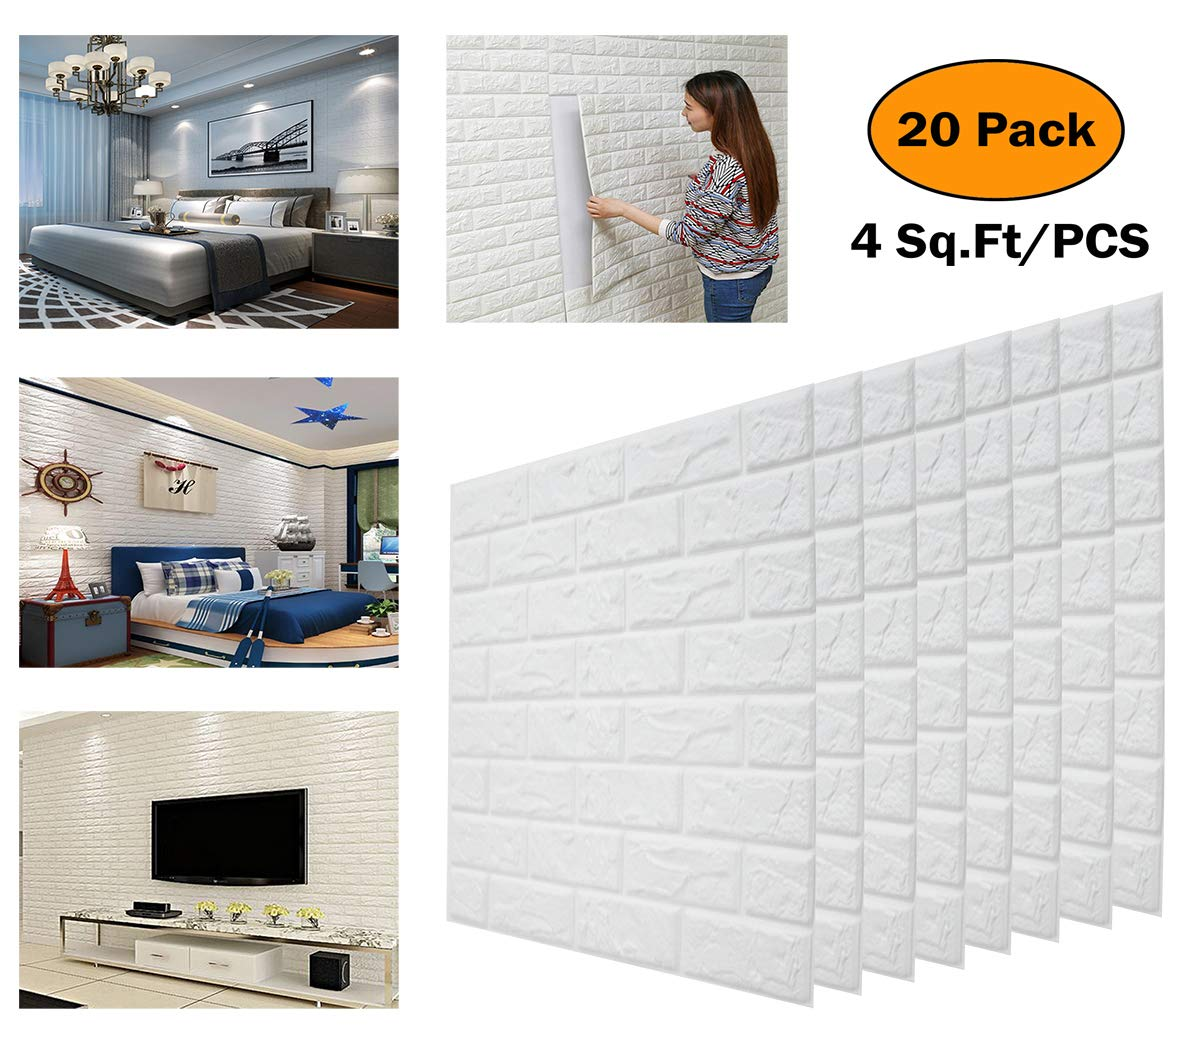 20pcs 3D Brick Wall Stickers Self-adhesive Wallpaper White Faux Brick Textured Effect Background for Wall Decoration DeElf